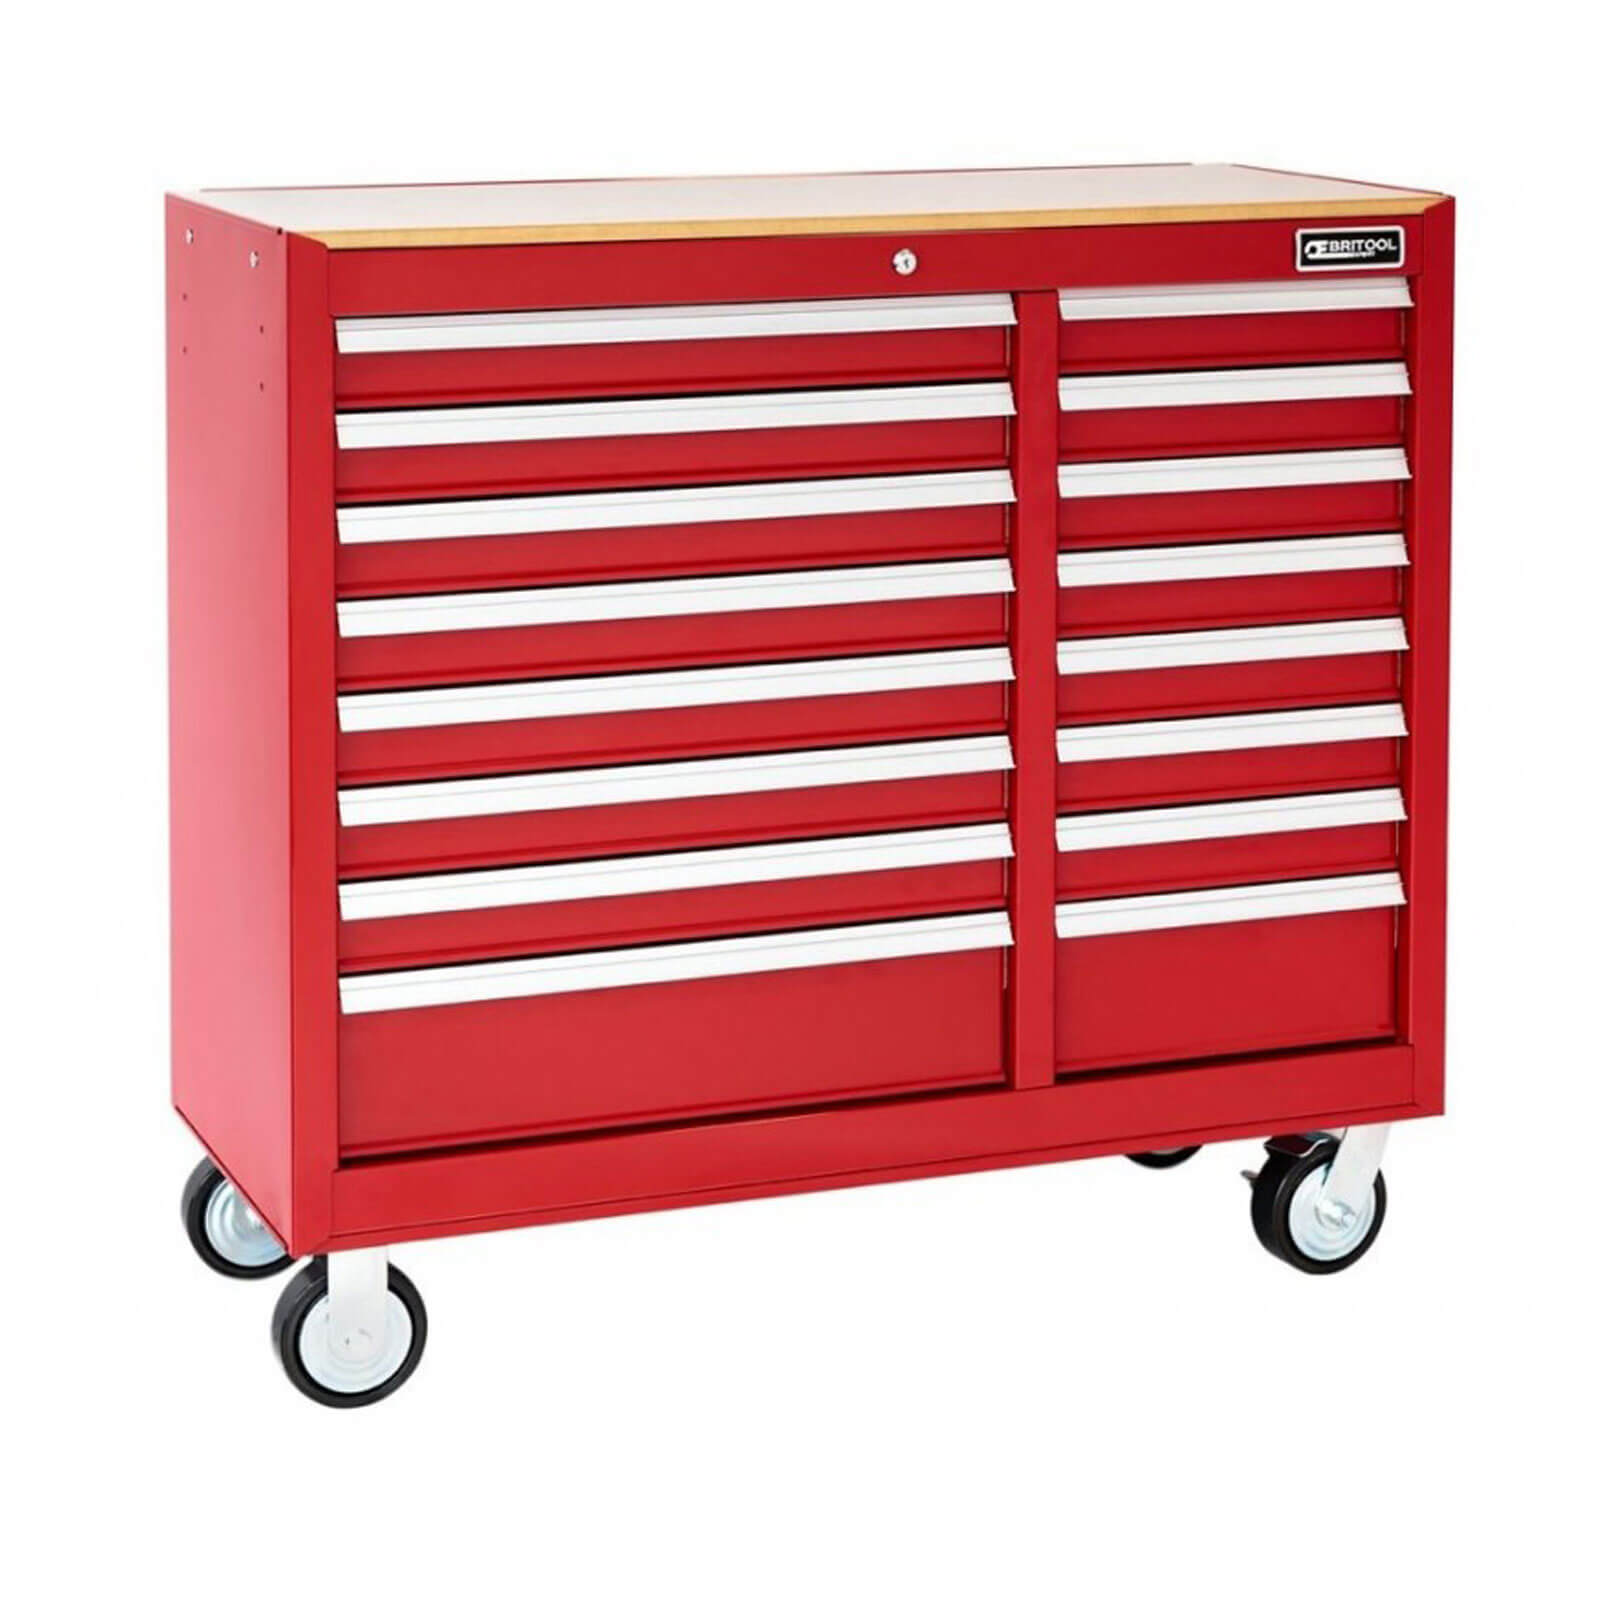 Image of Britool 16 Drawer Roller Cabinet Red